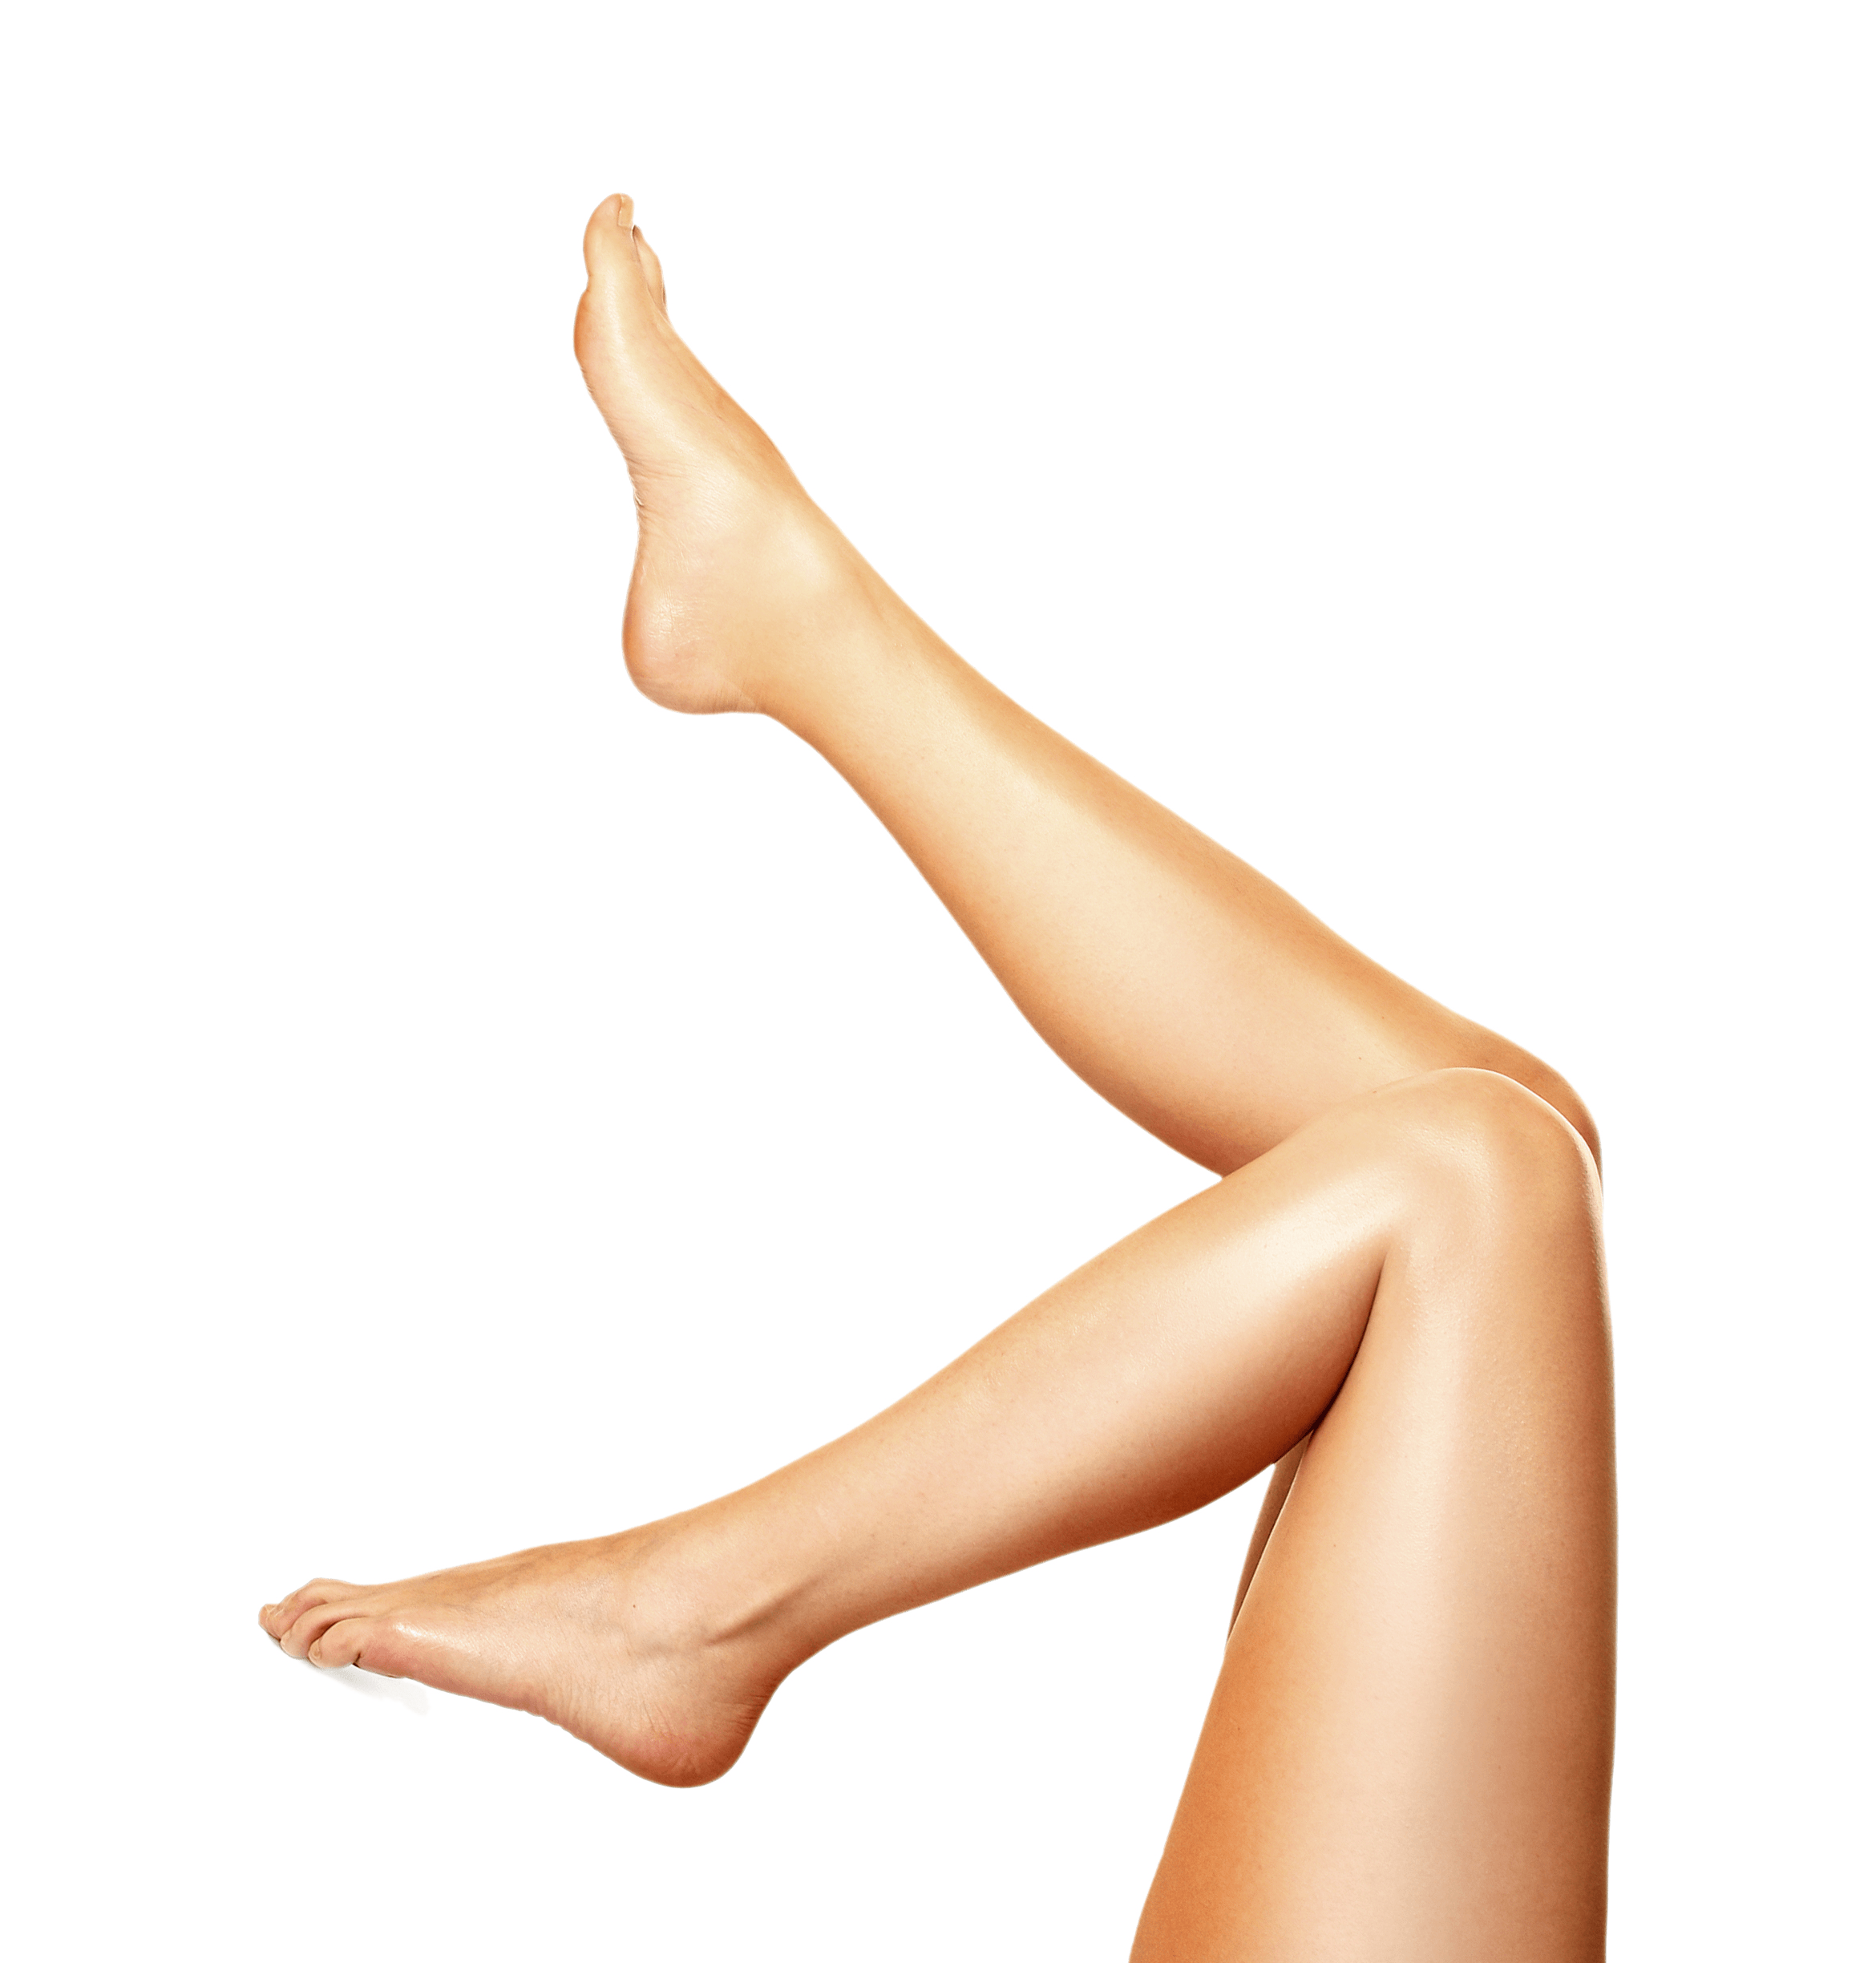 Legs and feet png. Sitting women transparent stickpng